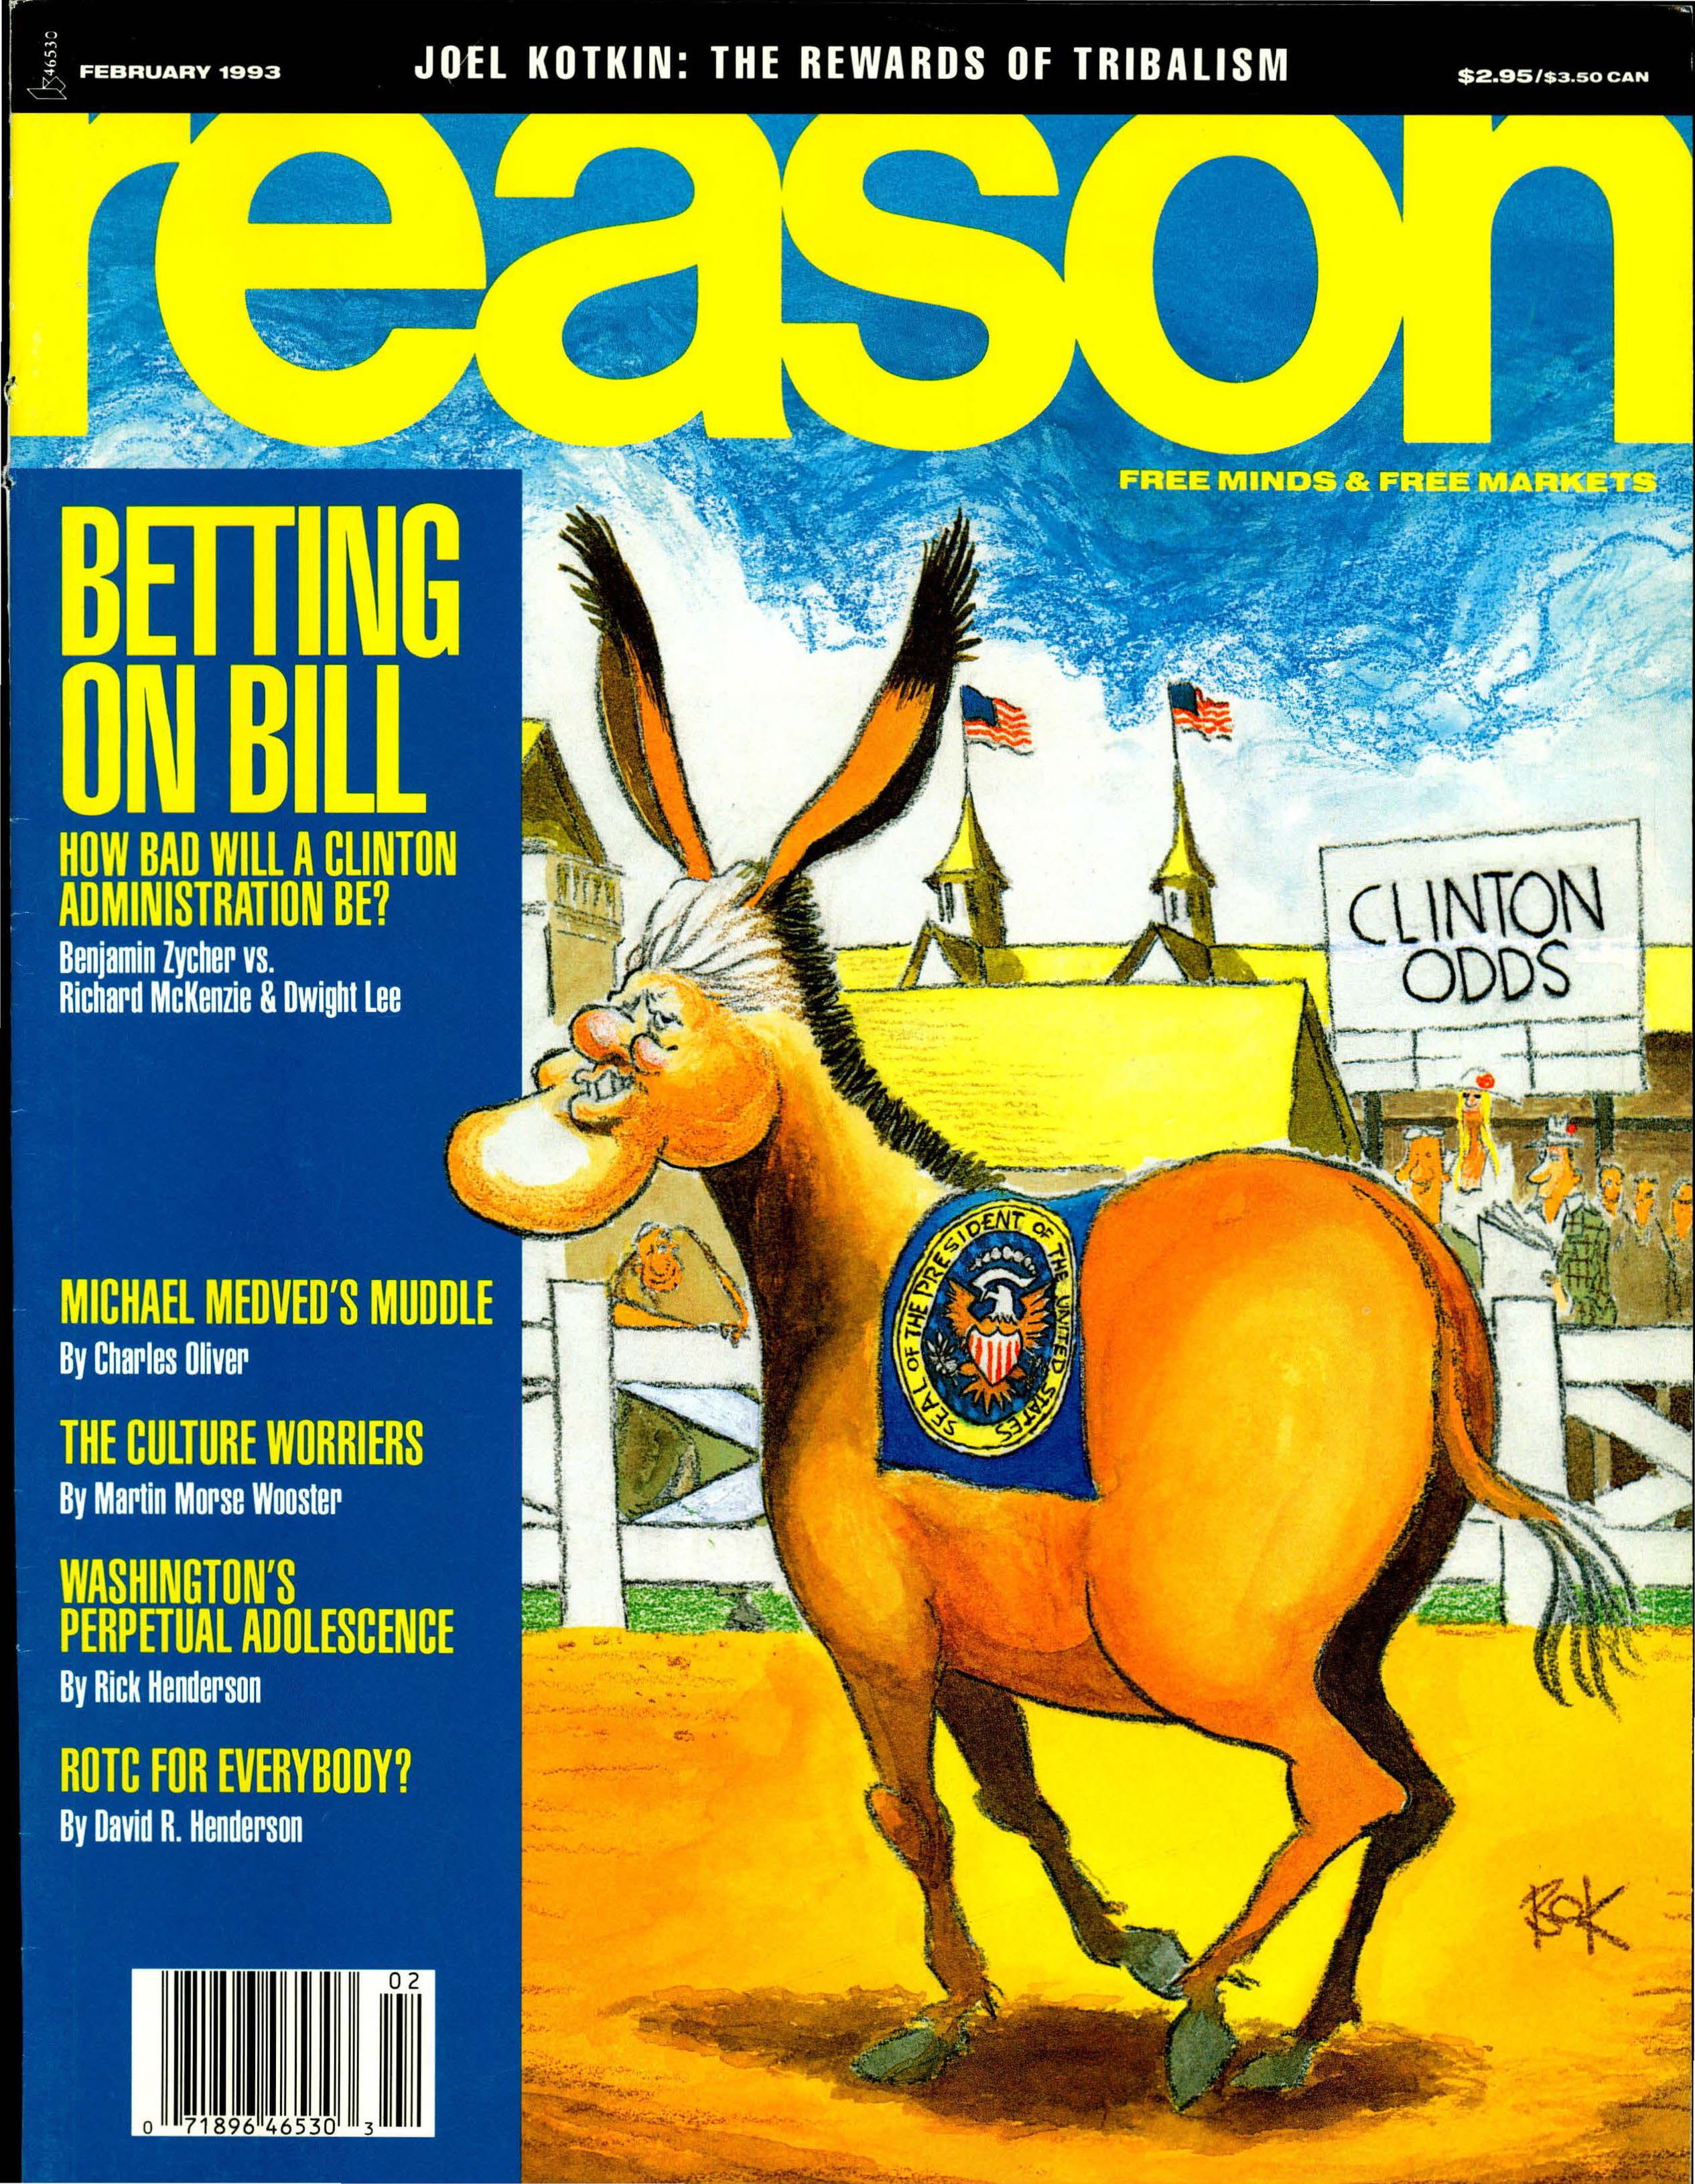 Reason Magazine, February 1993 cover image